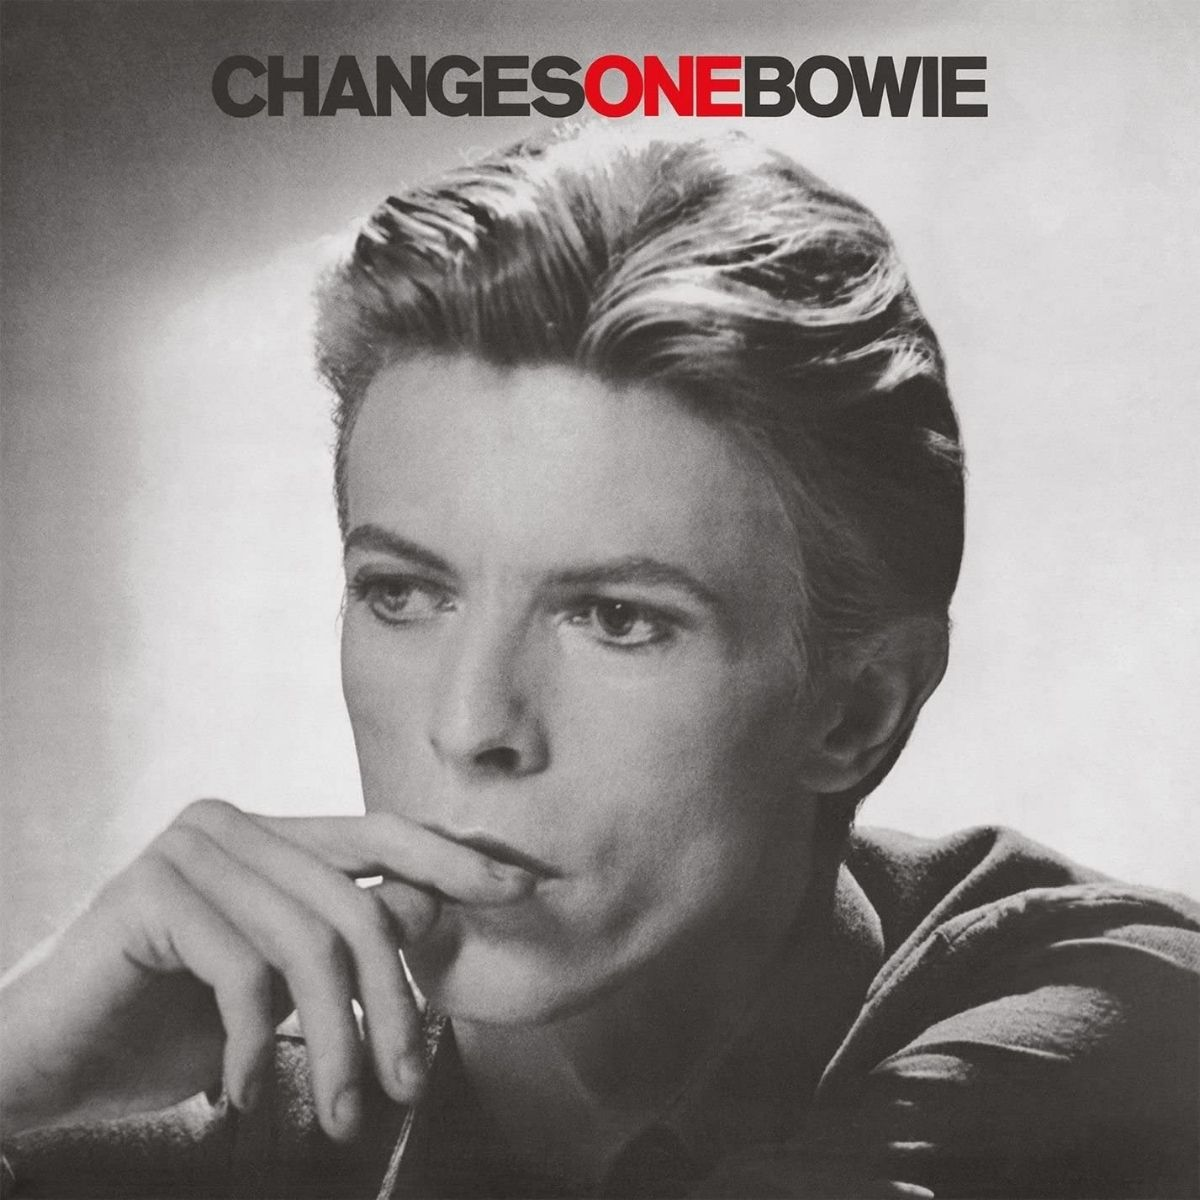 Lp David Bowie Changes One Bowie 40th Anniversary